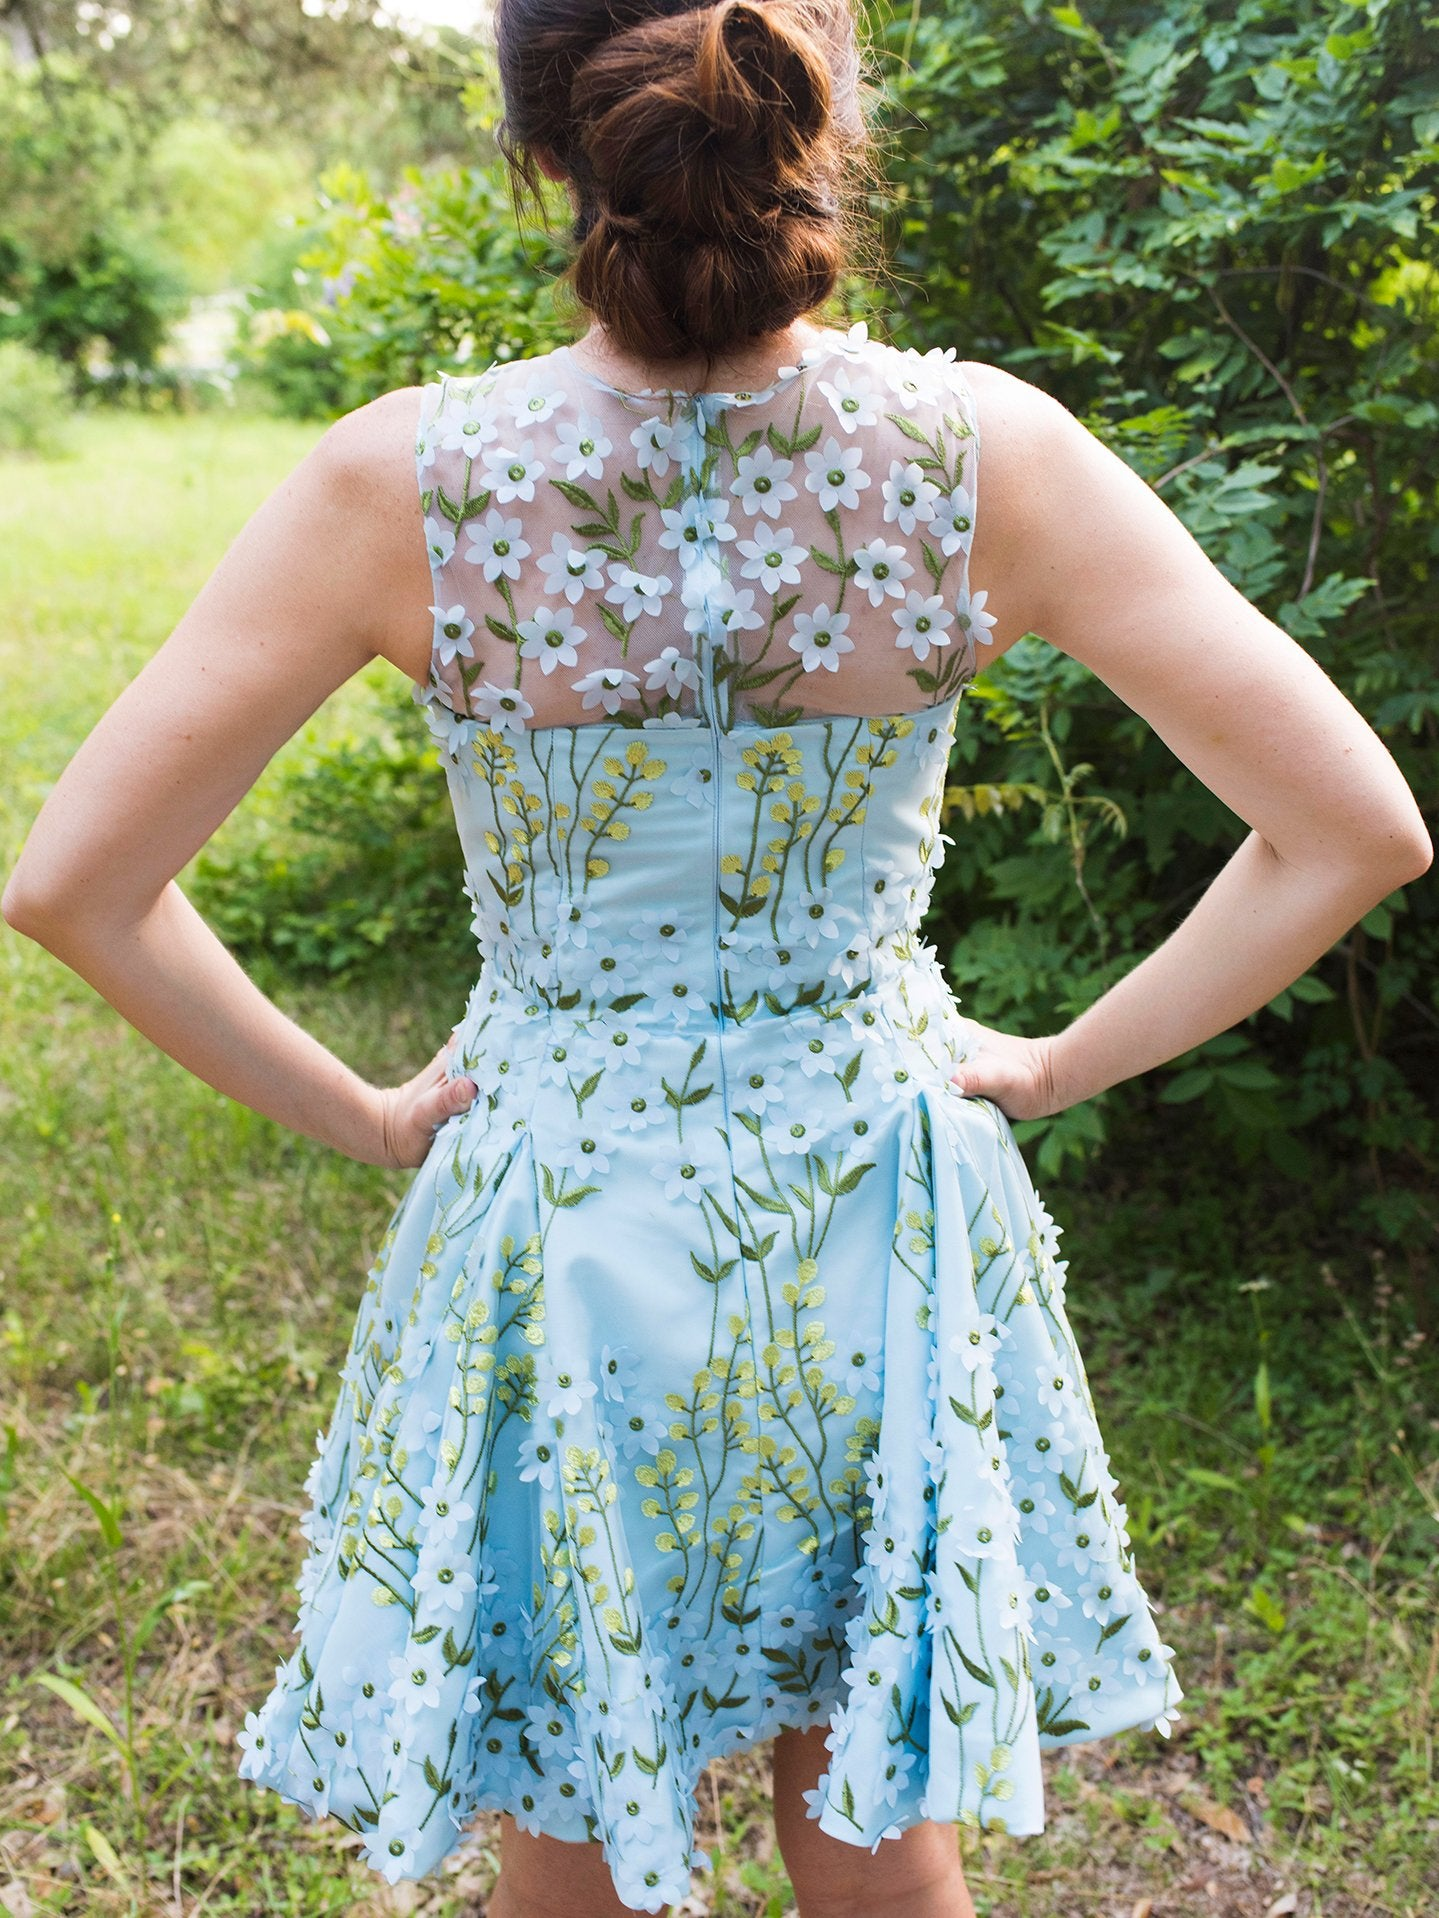 Lilies of the Field - They Bloom Dress Pic 6